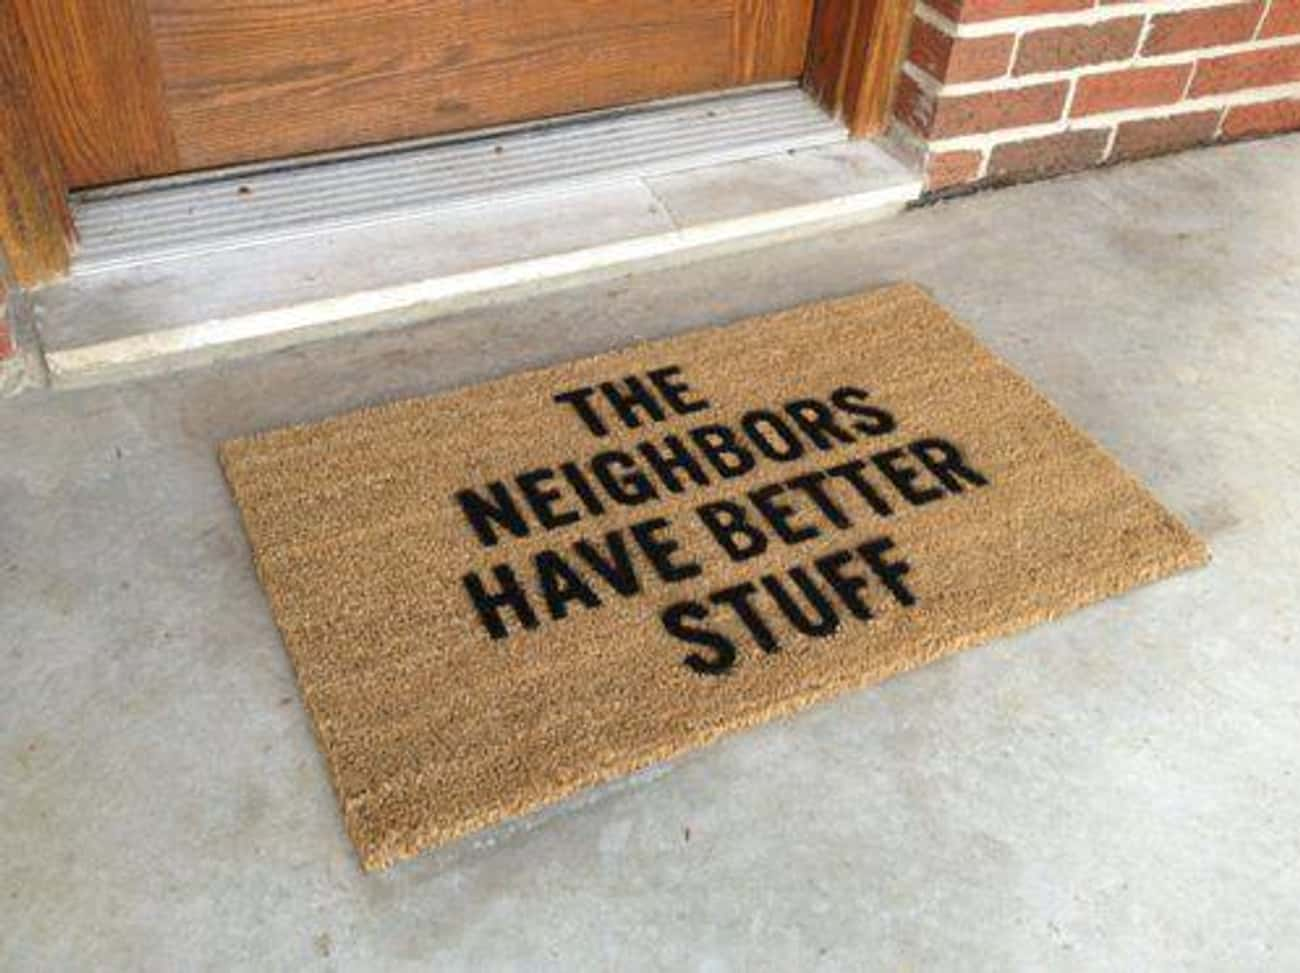 Dear Burglars... is listed (or ranked) 1 on the list 30 Funny Doormats Your Houseguests Will Definitely Laugh At